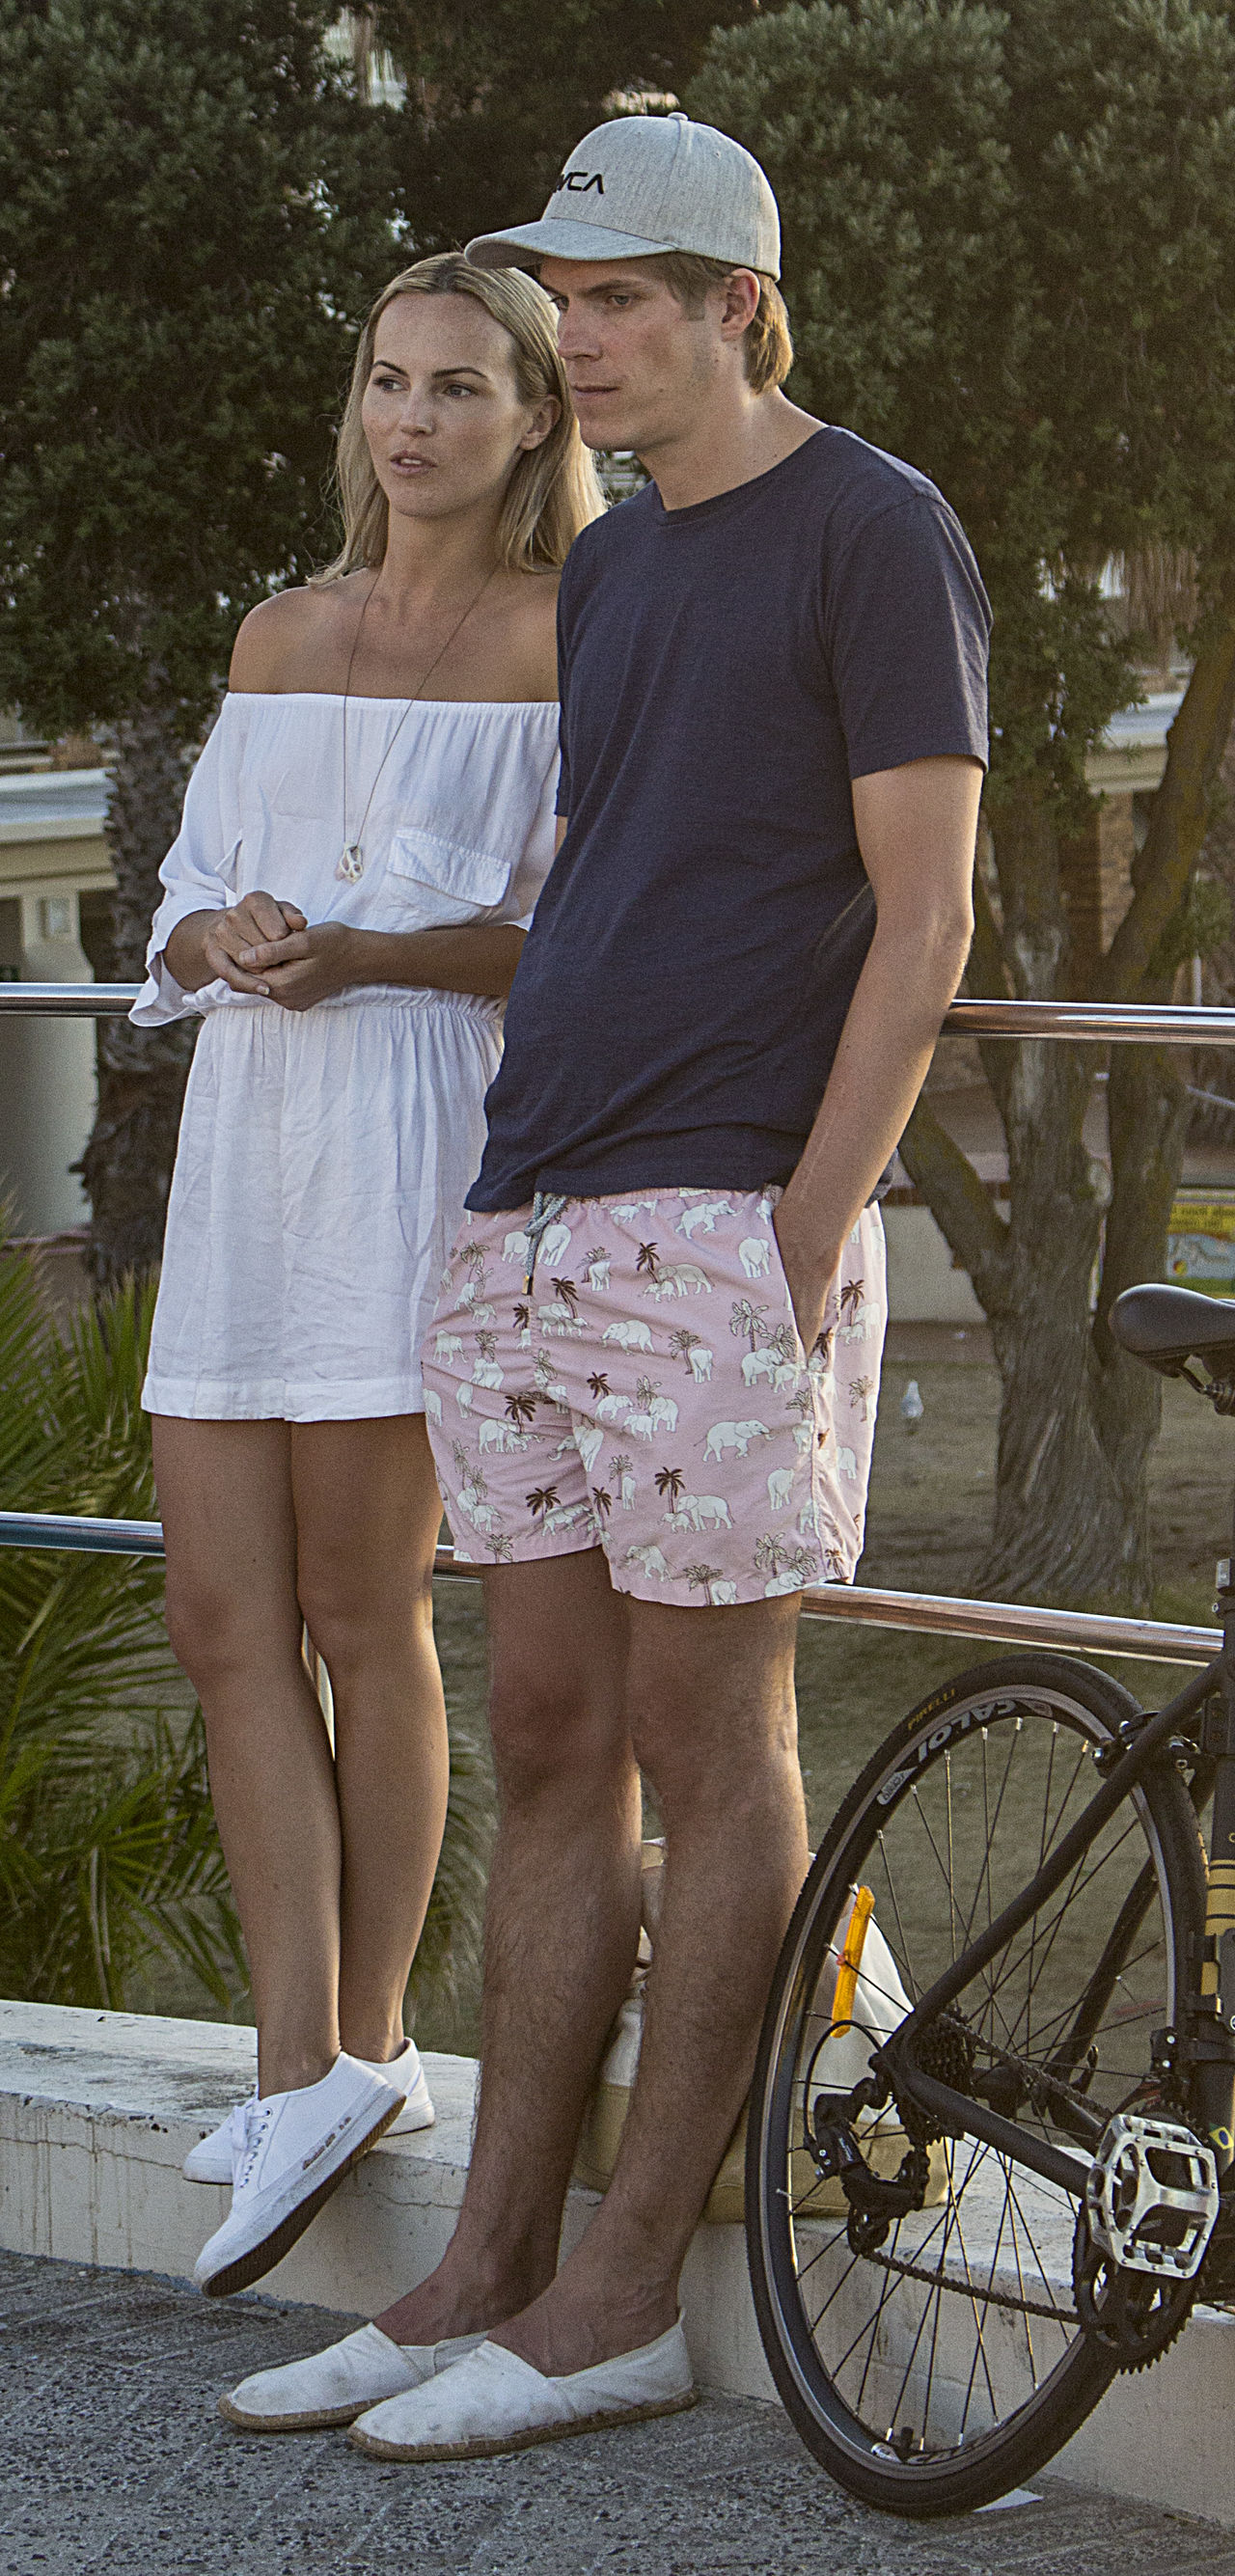 Candid Candid Photography Couple Front View Full Length Legs Observers Streetphotography Sunset Togetherness Two People